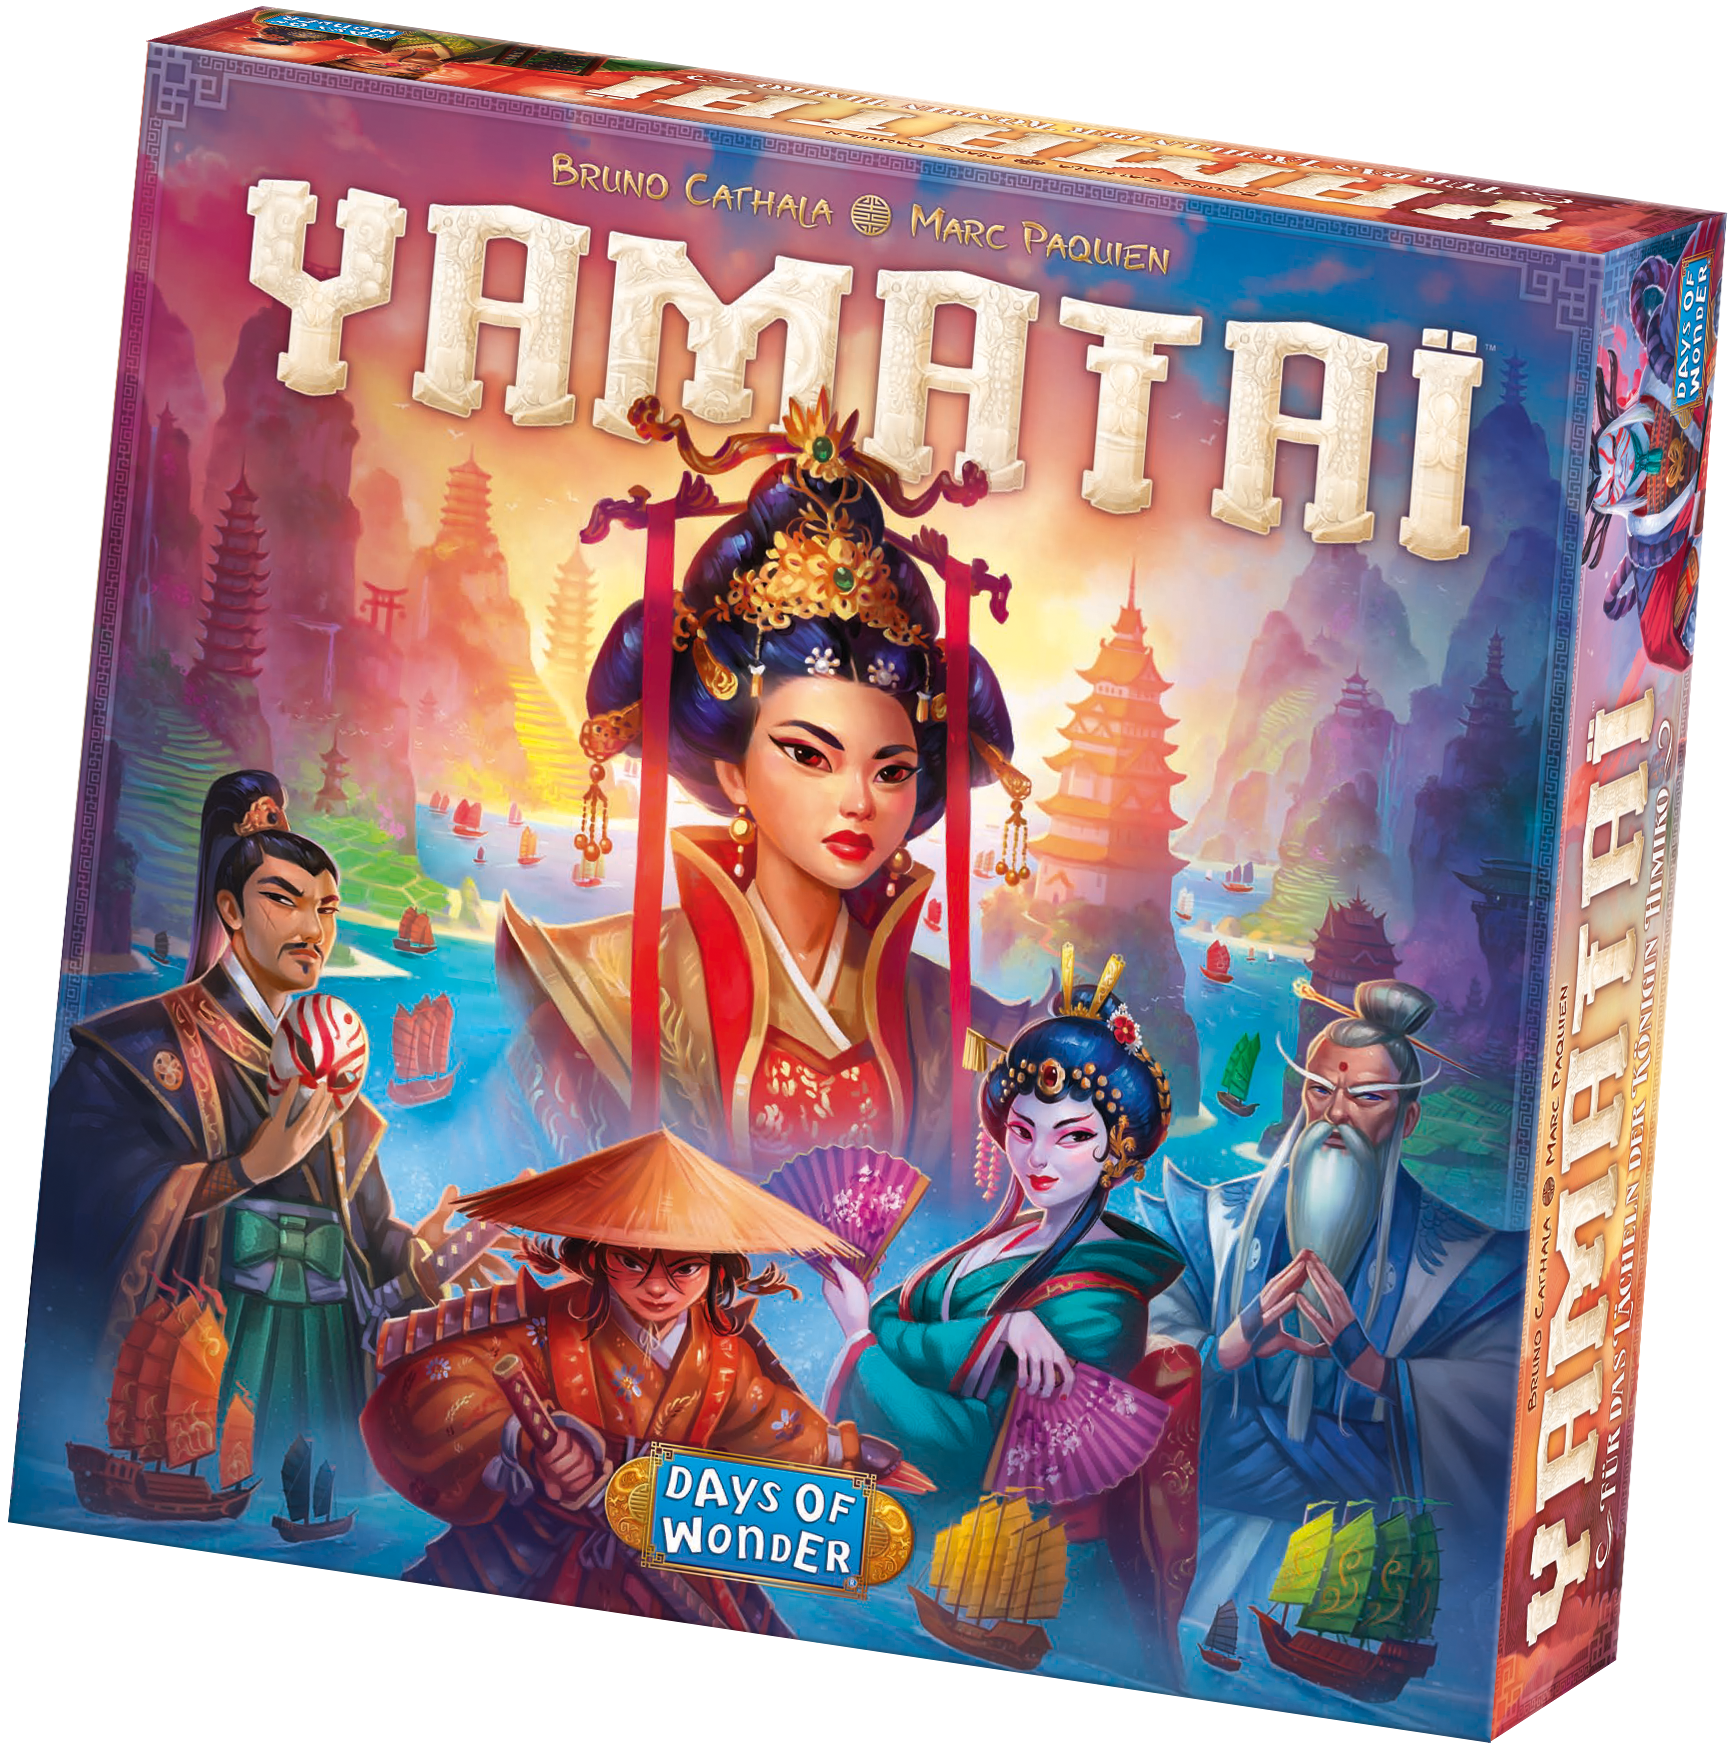 yamatai-box-jeremie-fleury-cathala-days-wonder